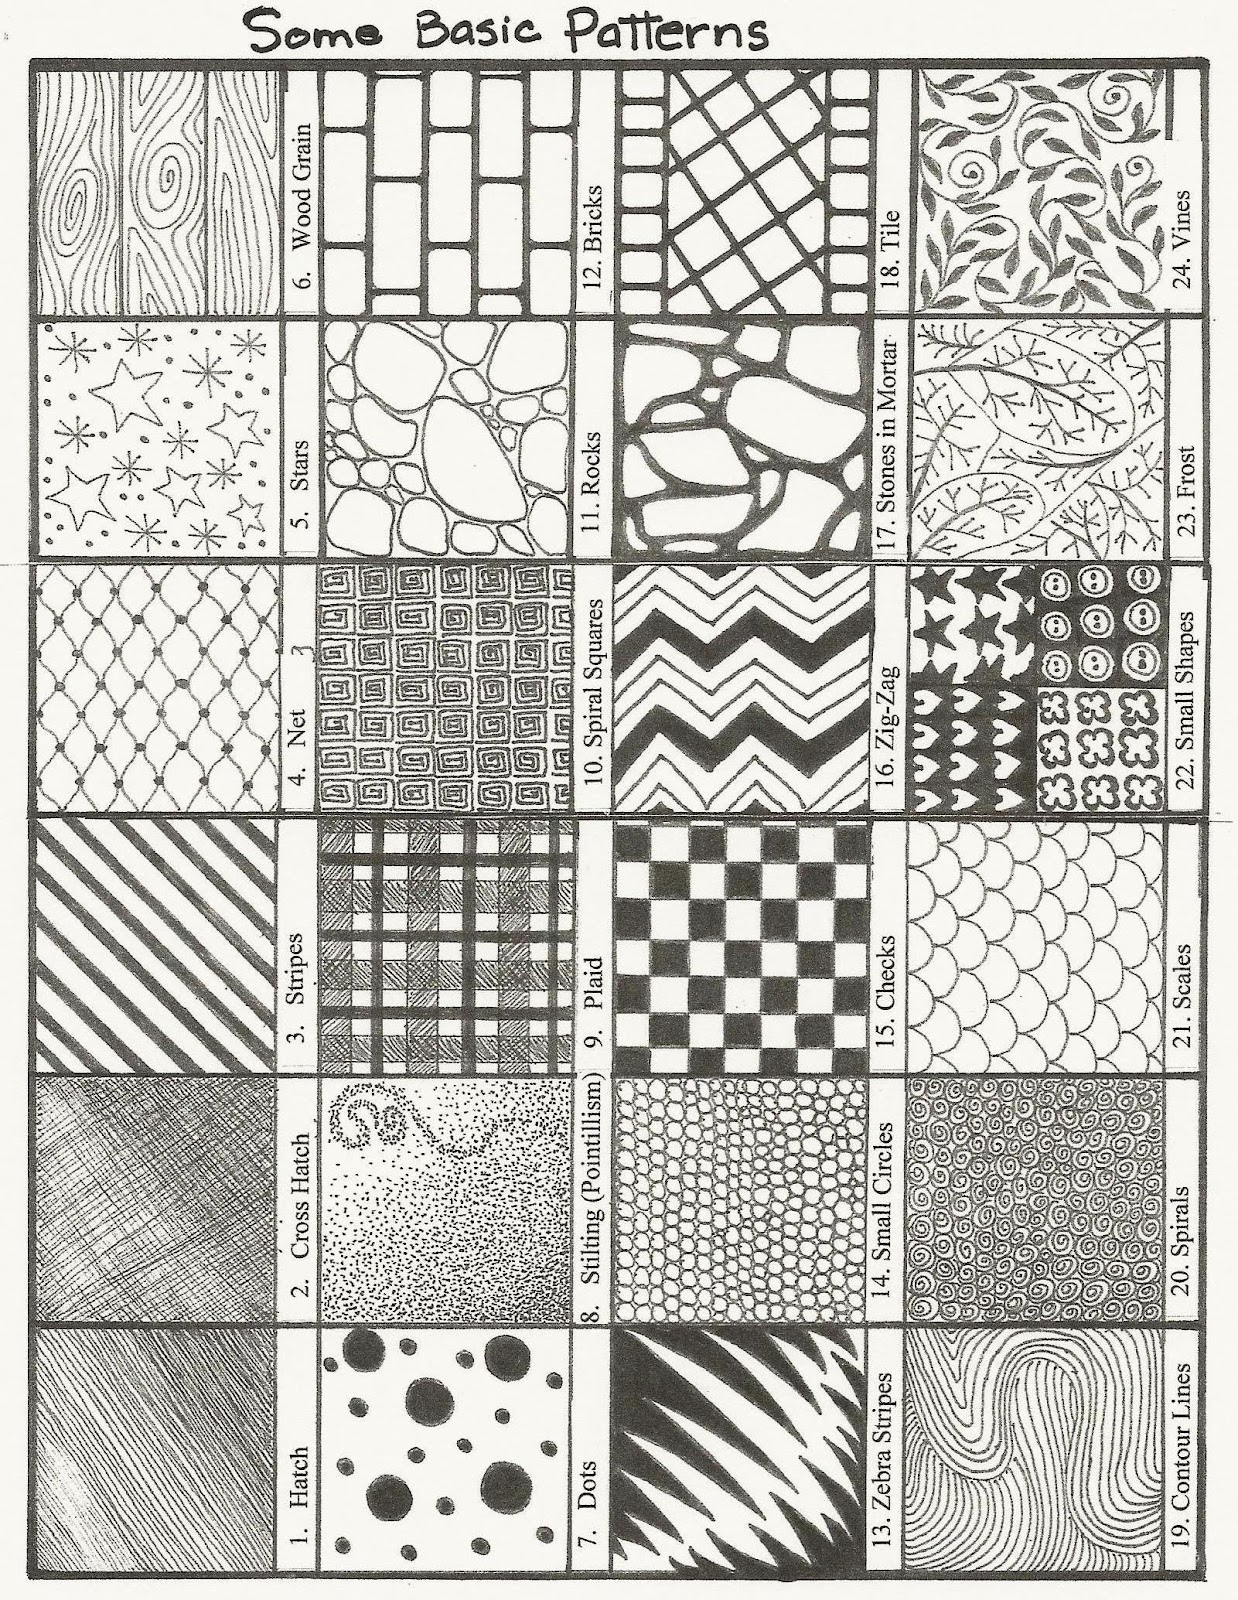 Basic Line Designs : Hoontoidly simple tumblr drawings patterns images